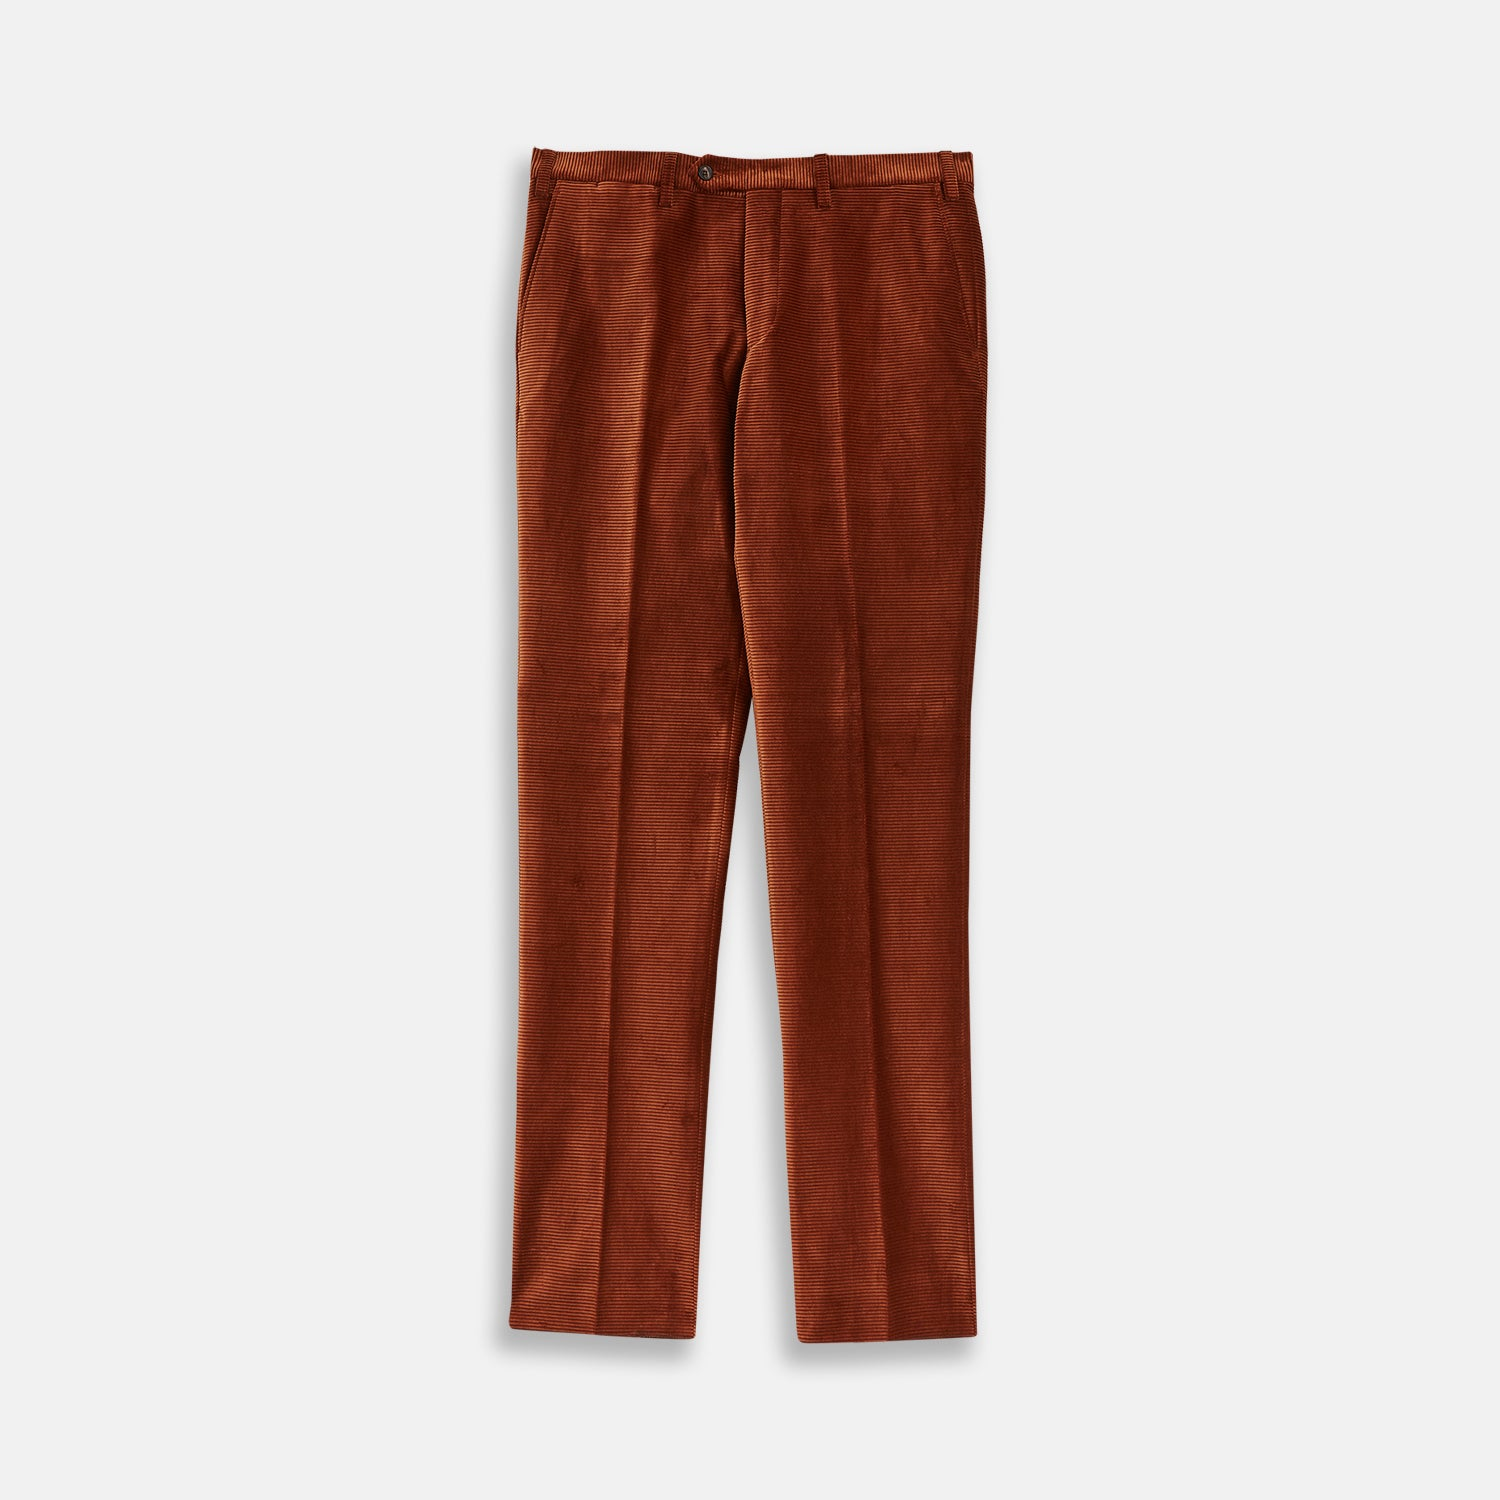 Rust Horizontal Cord Trousers